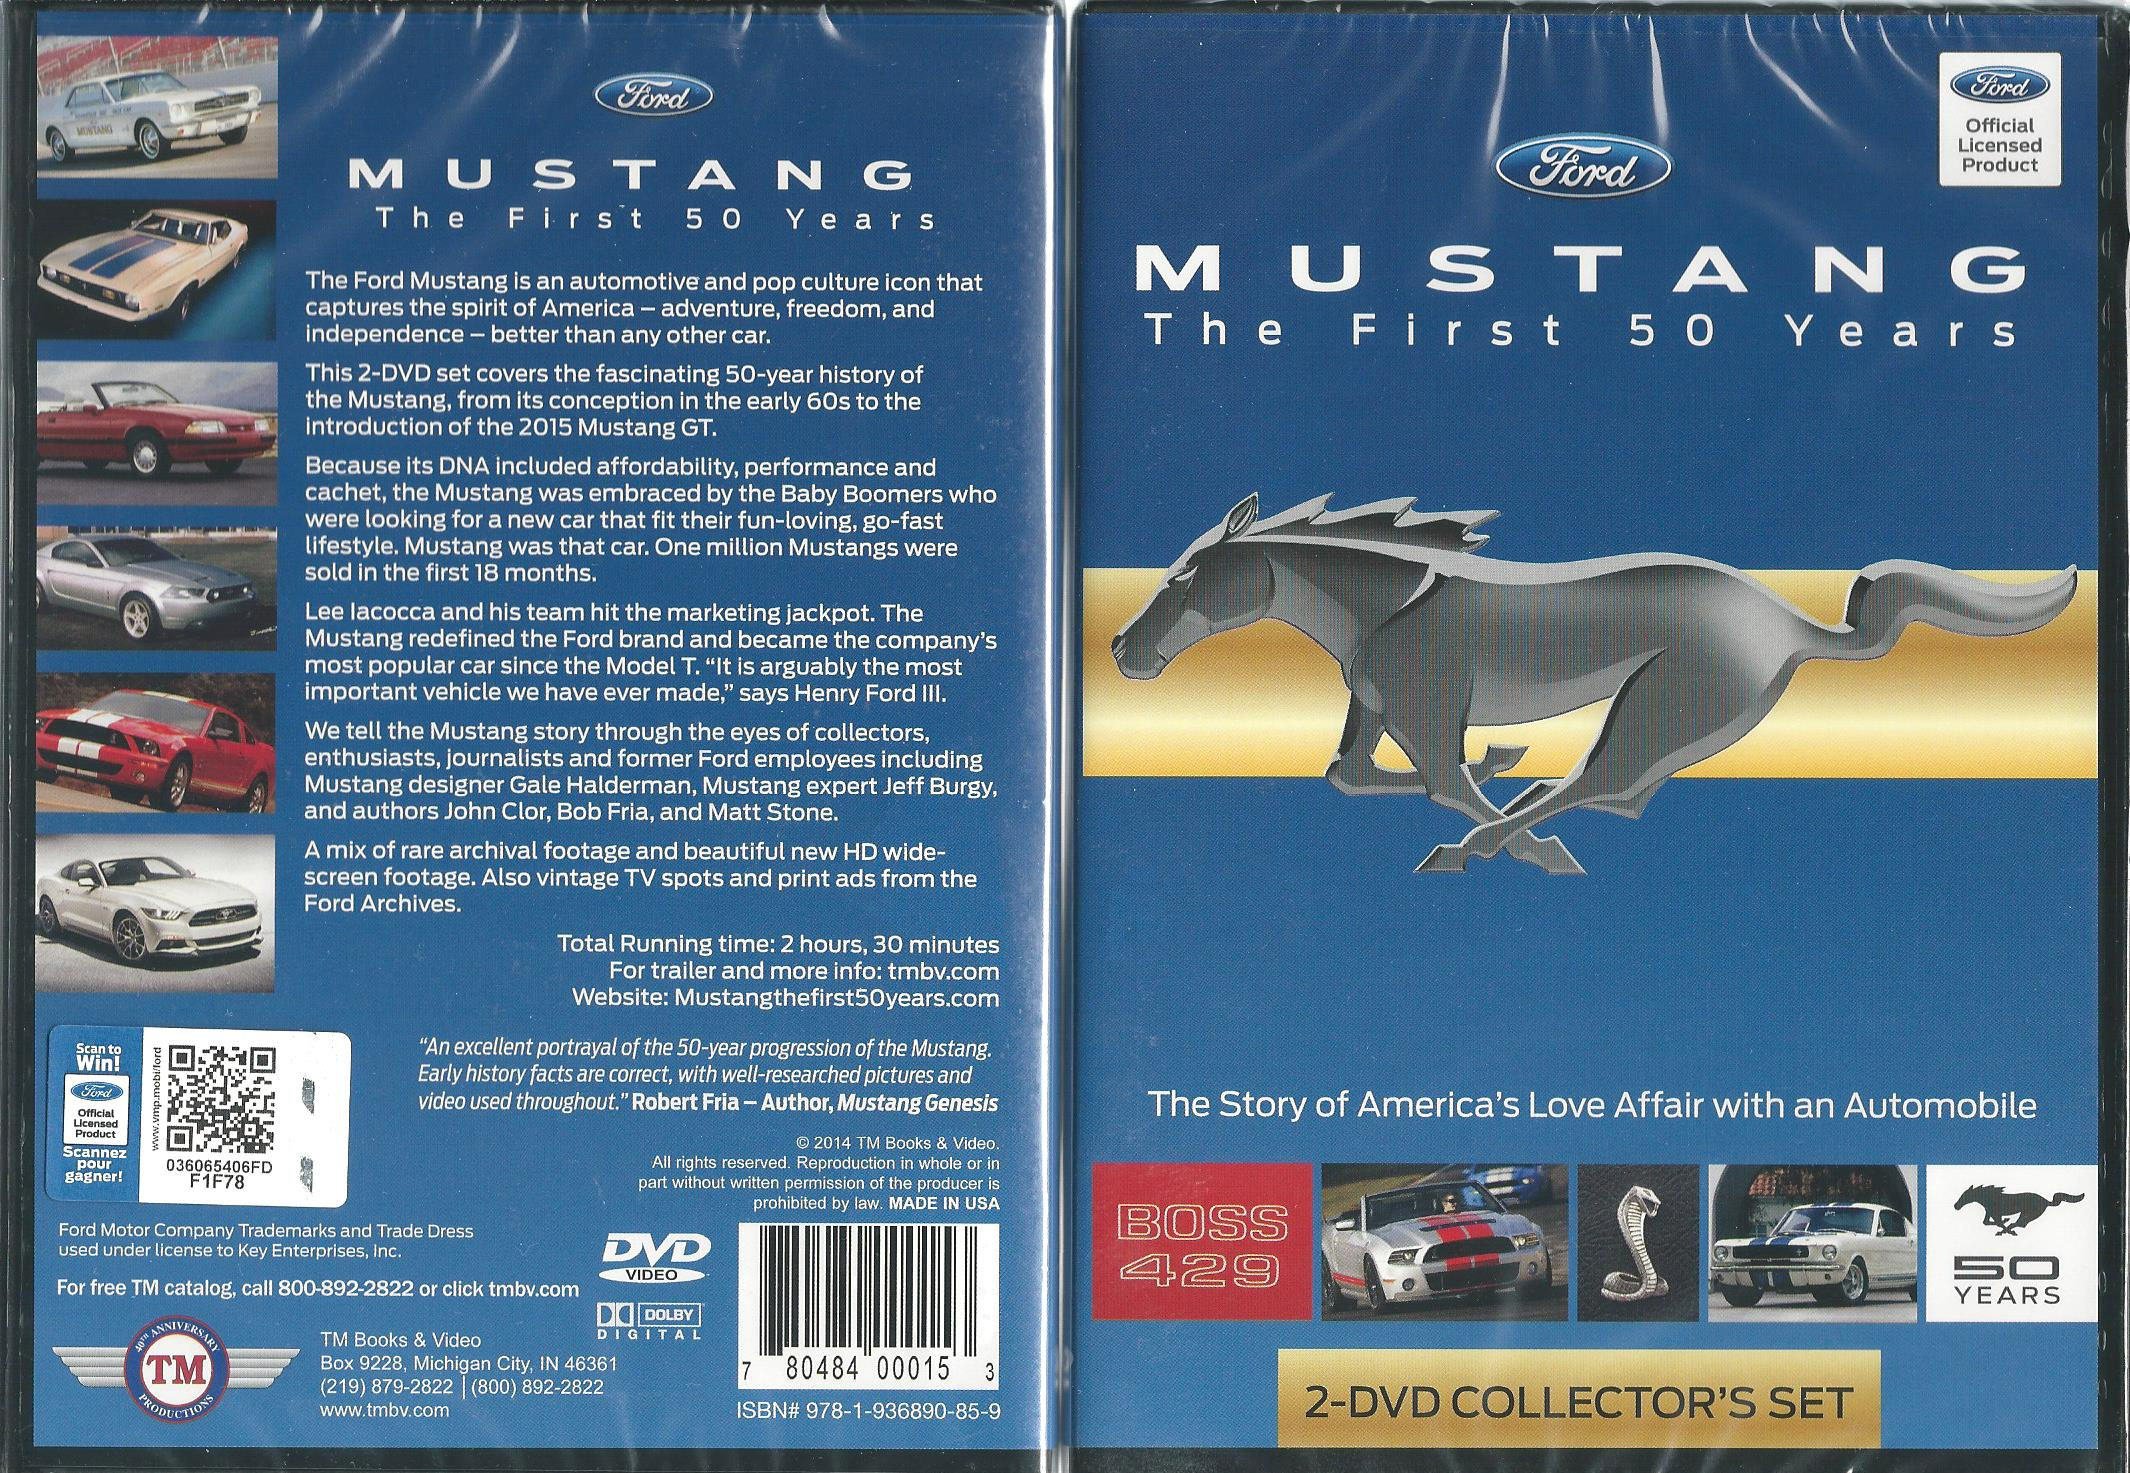 MUSTANG The First 50 Years; Two-DVD set now available